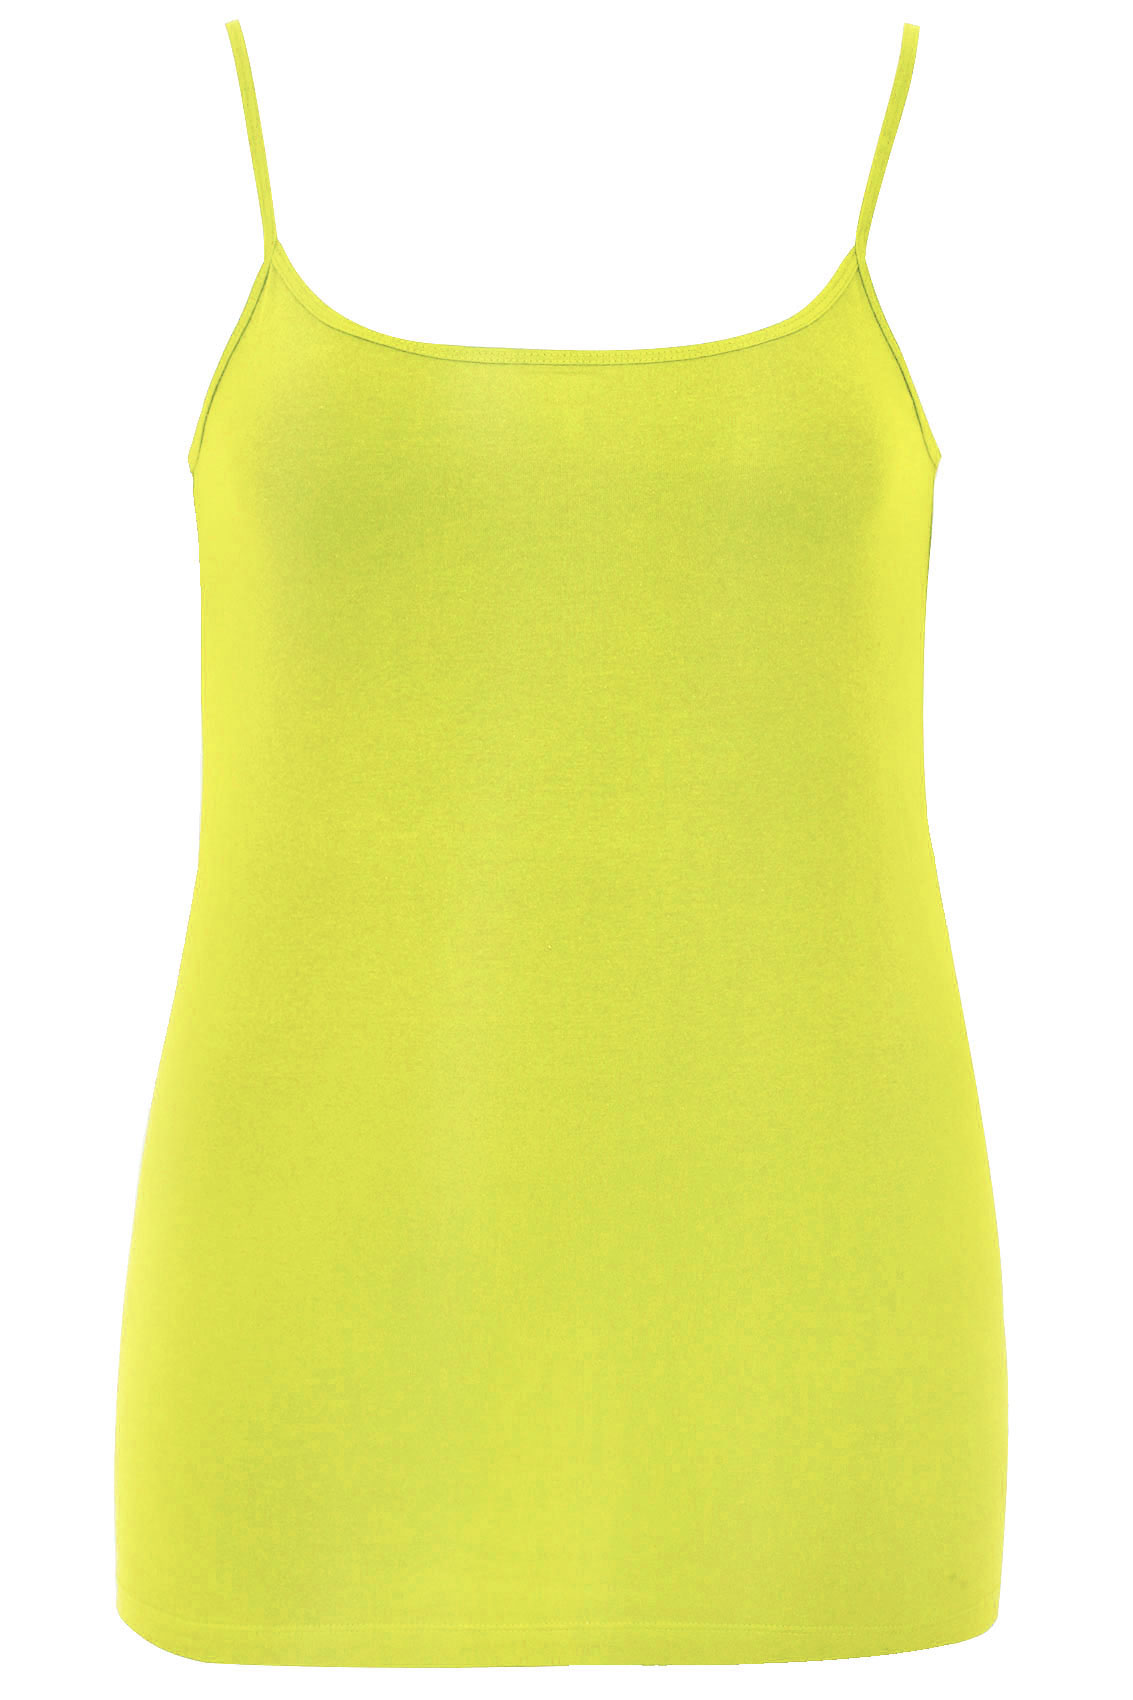 Find great deals on eBay for lime green vest. Shop with confidence.